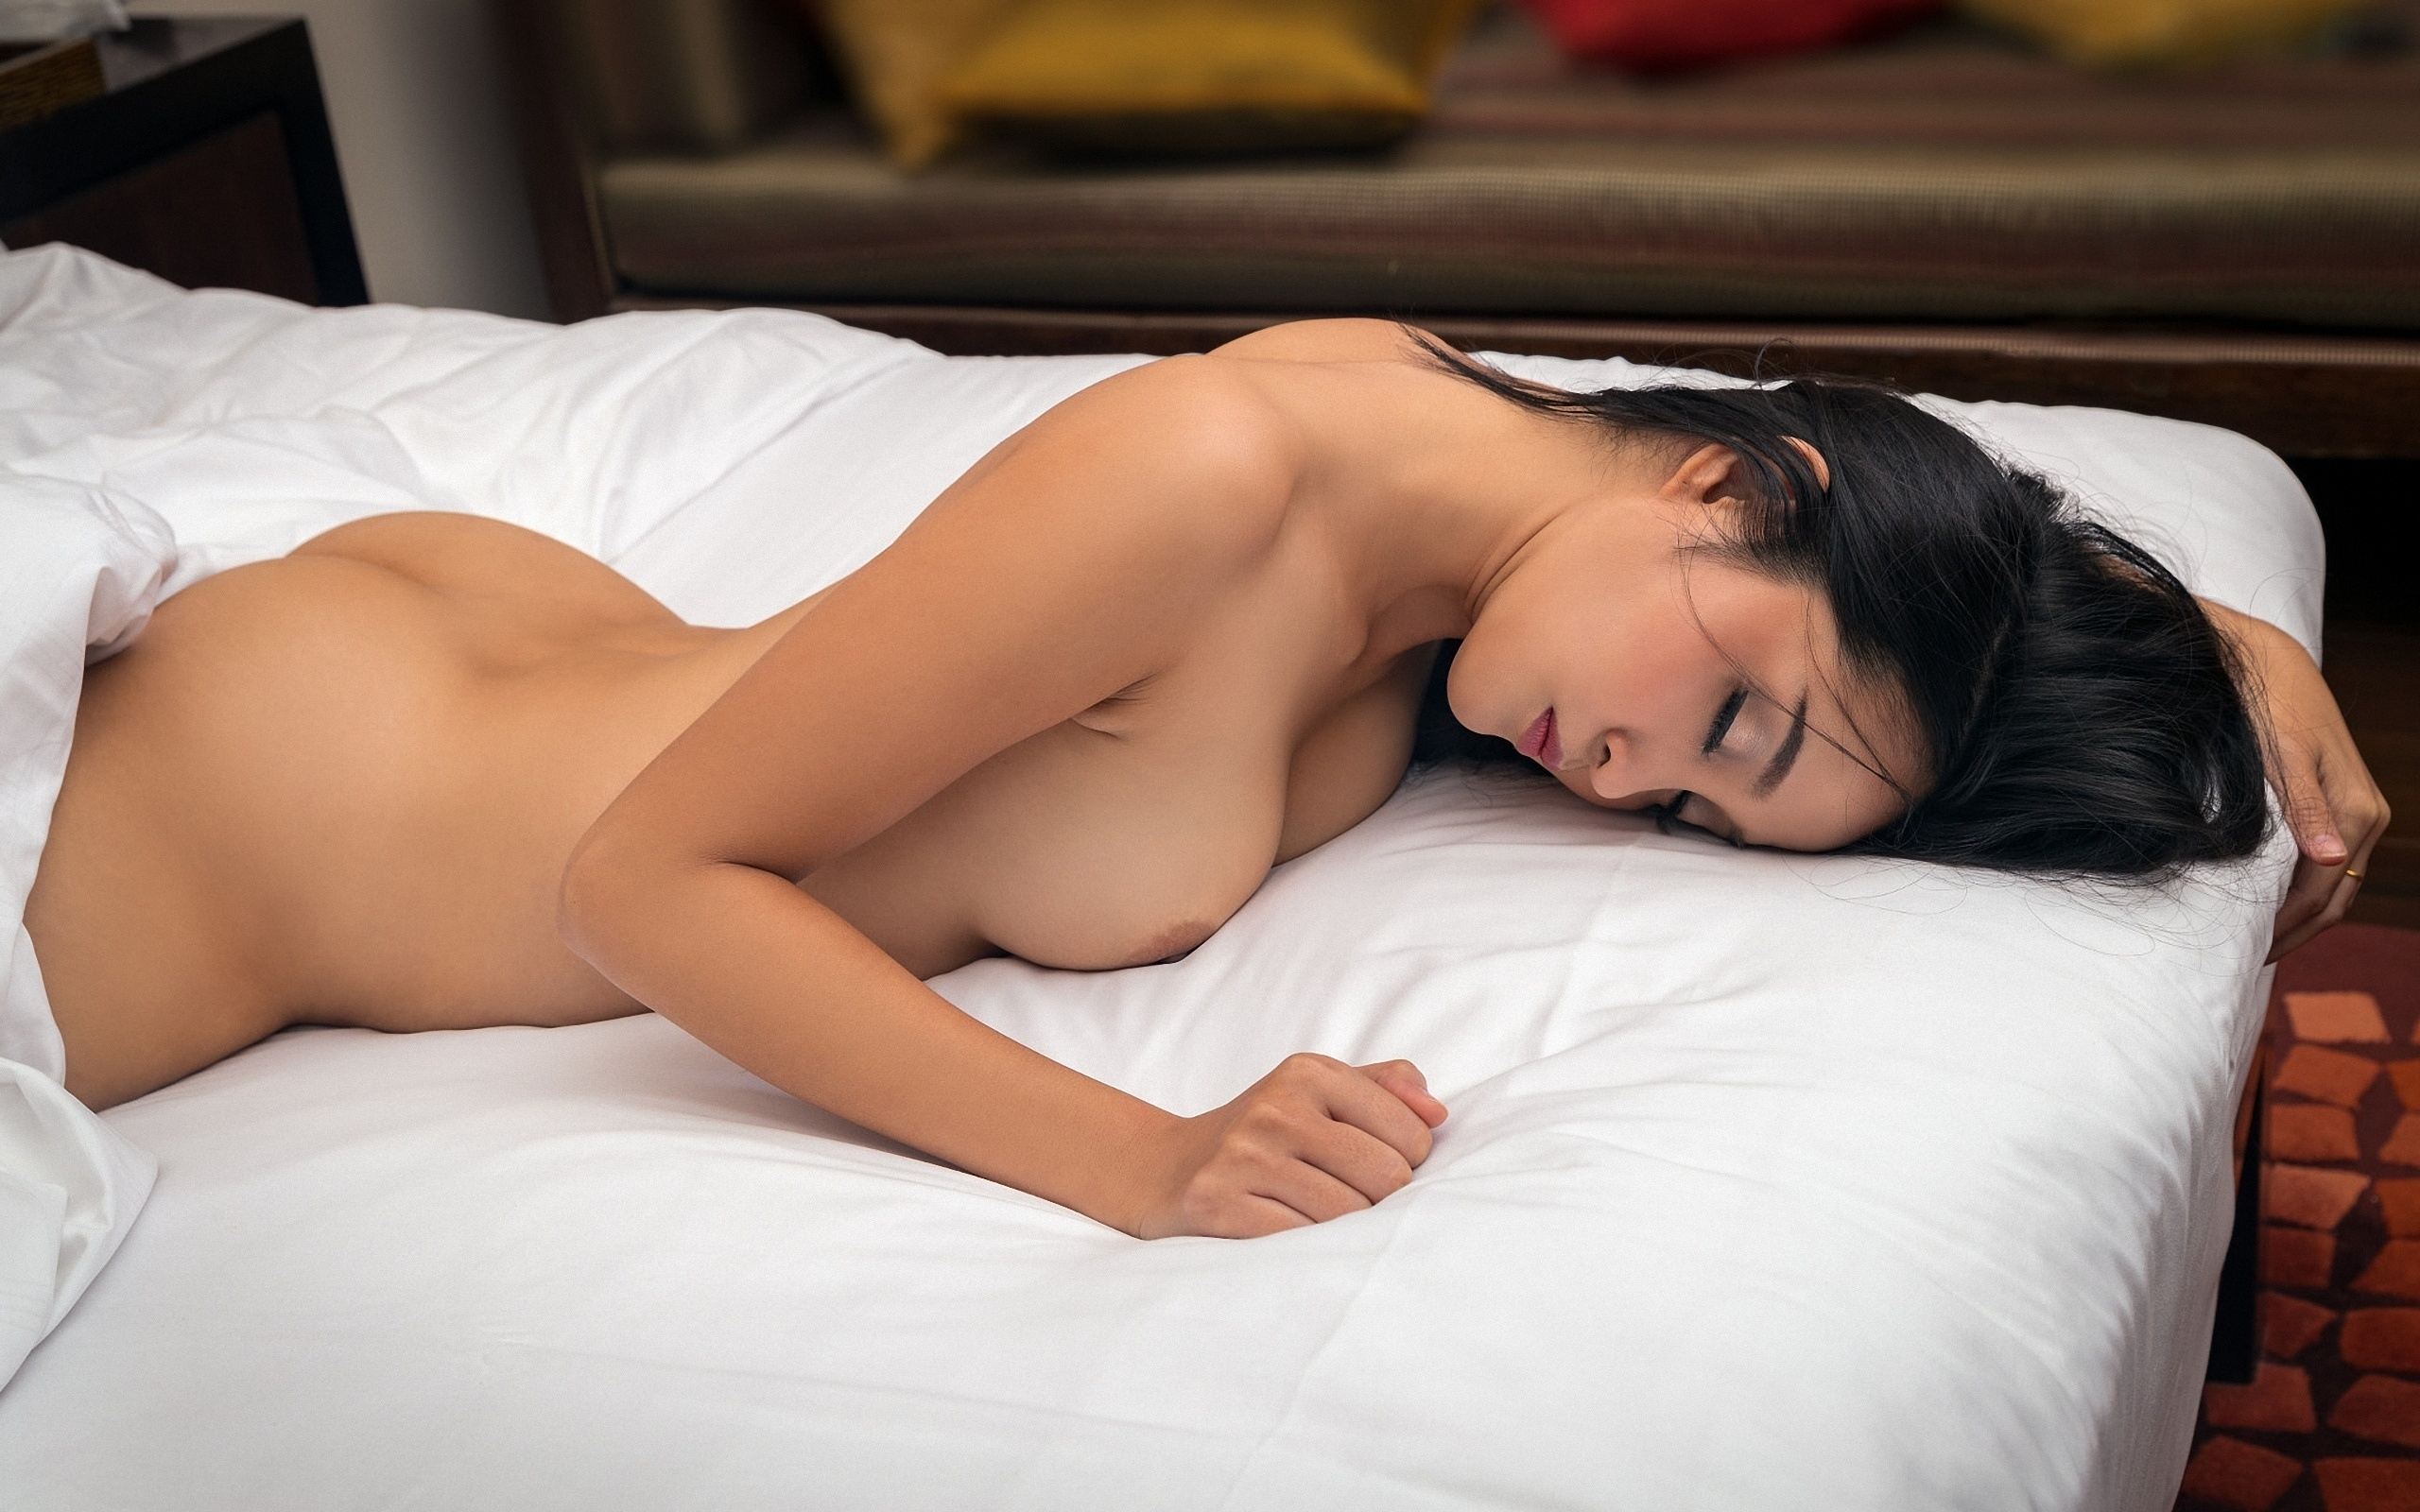 Naked sleeping lady 13